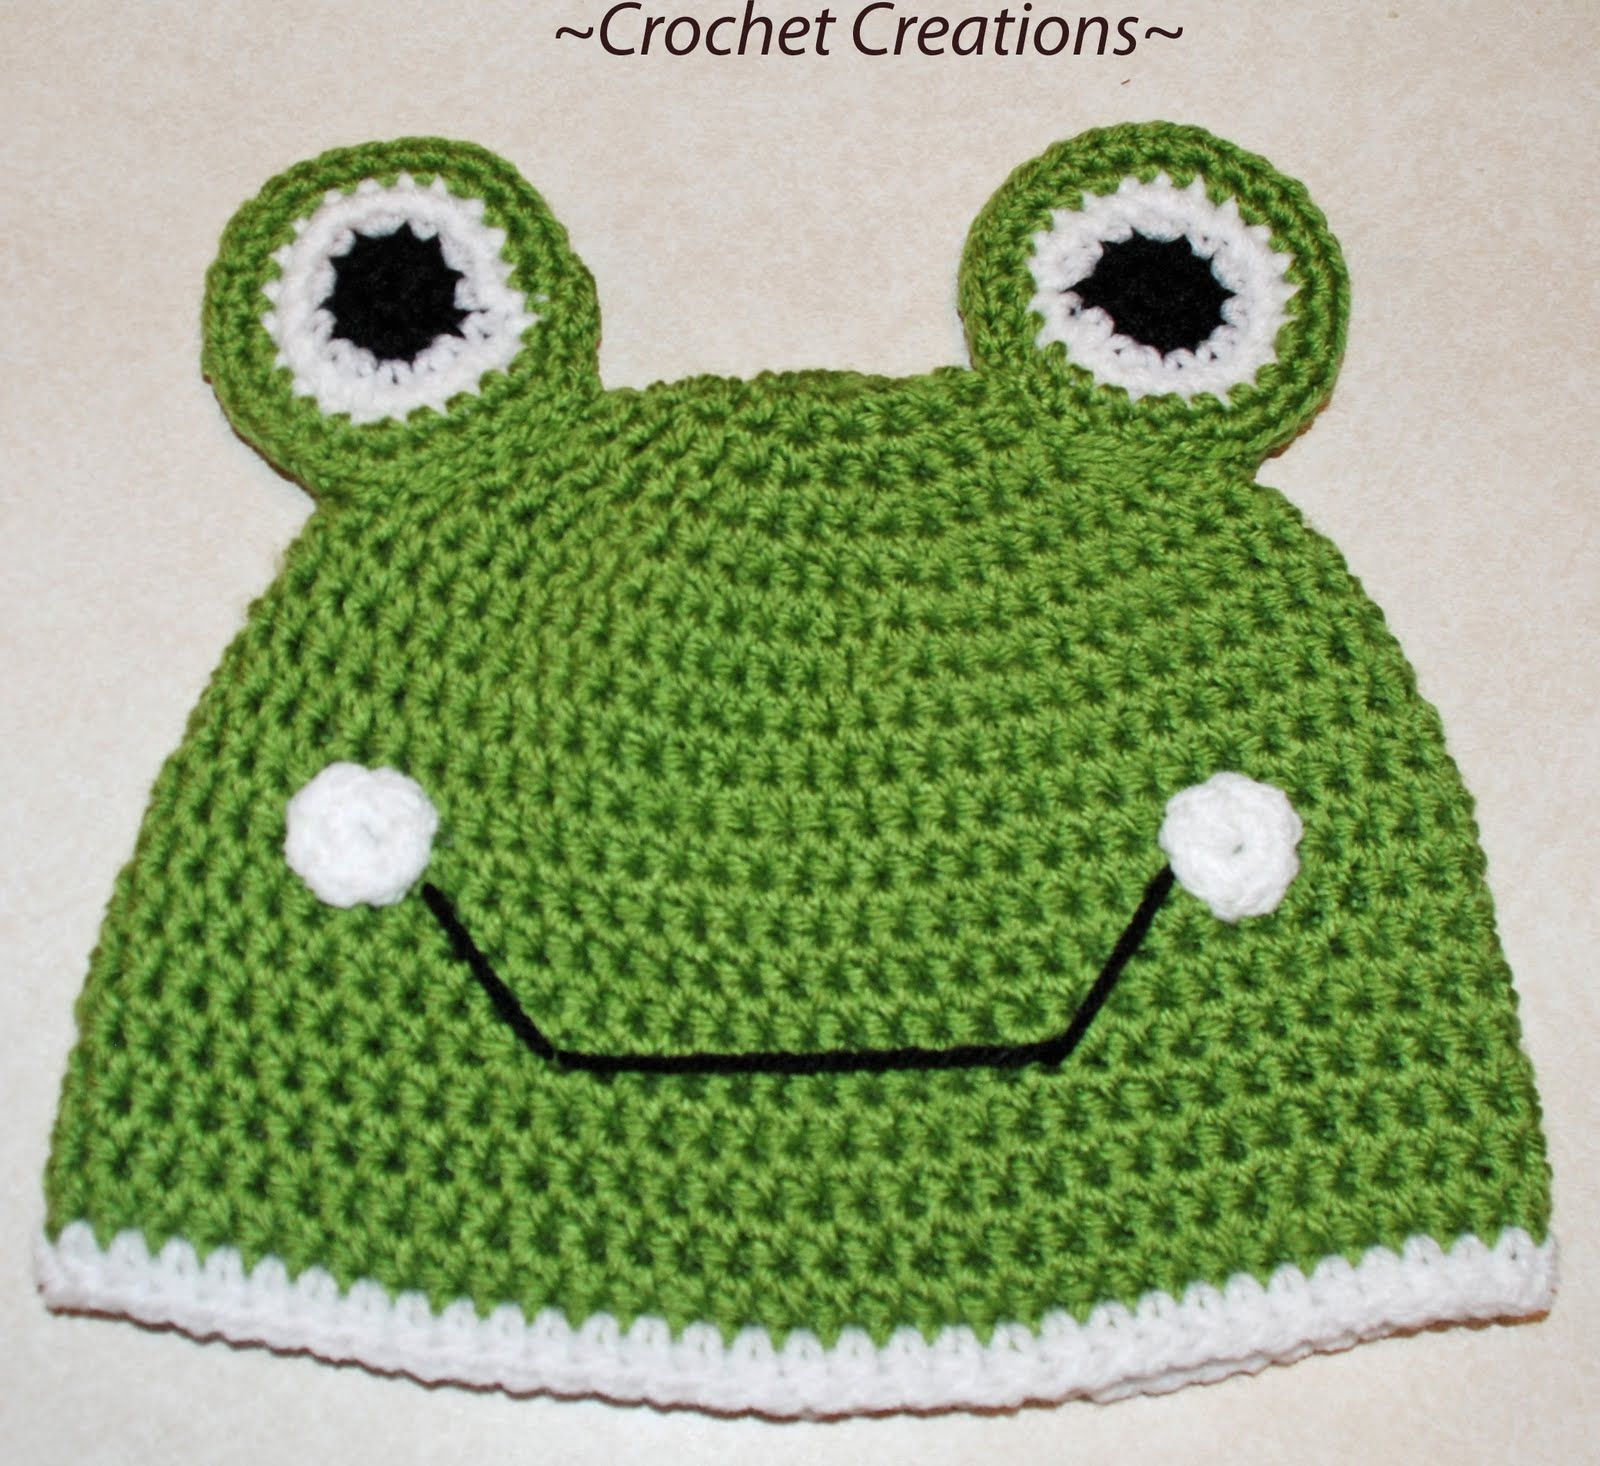 Crochet creative creations free patterns and instructions crochet creative creations free patterns and instructions crochet frog child hat bankloansurffo Gallery